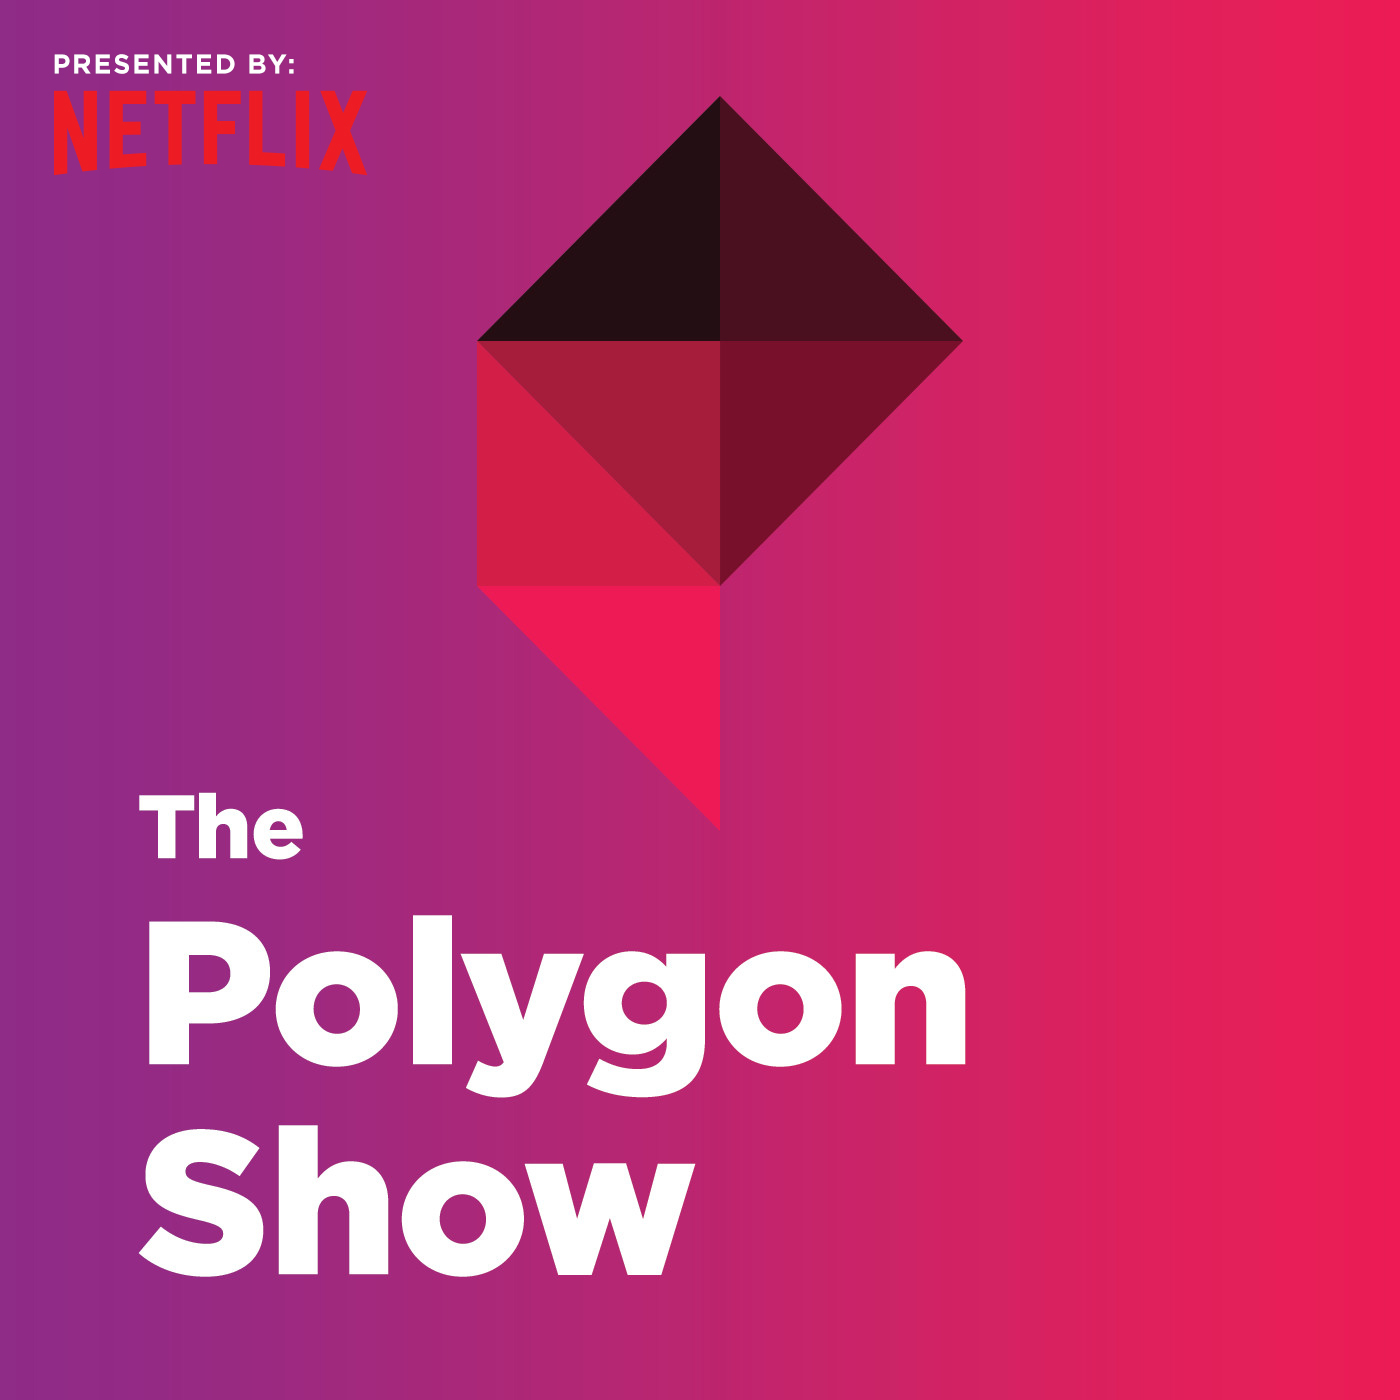 The Polygon Show 56 - 16 Fifth Graders Carrying a Party Sub